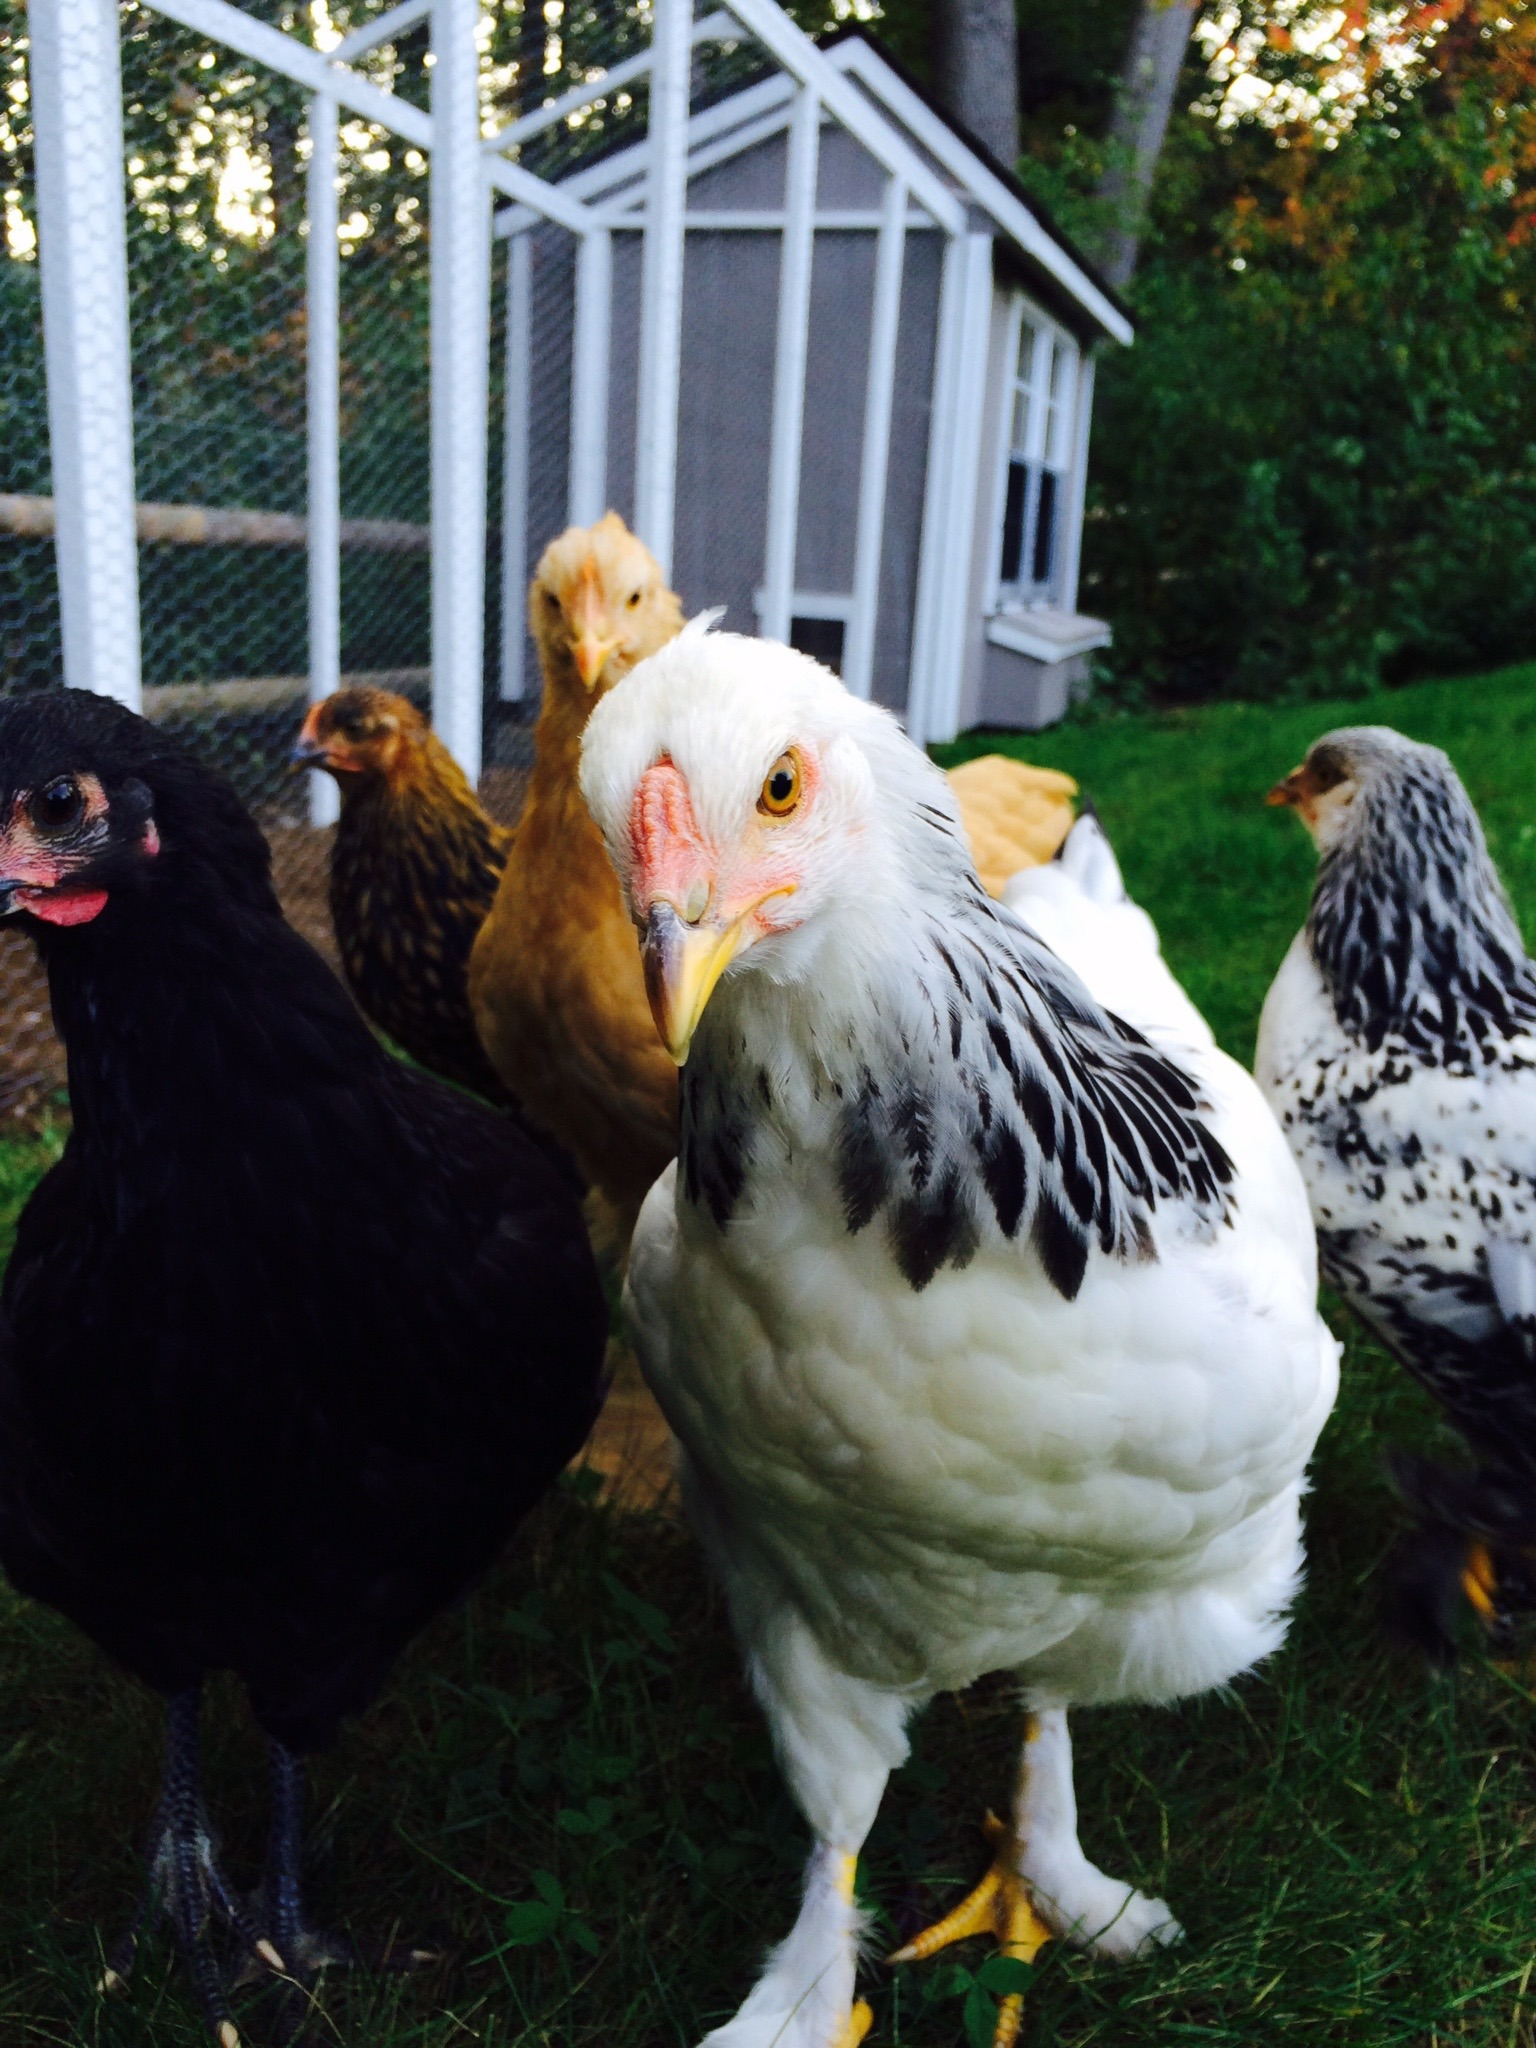 Approach to Respiratory Disease in Backyard Chickens • MSPCA